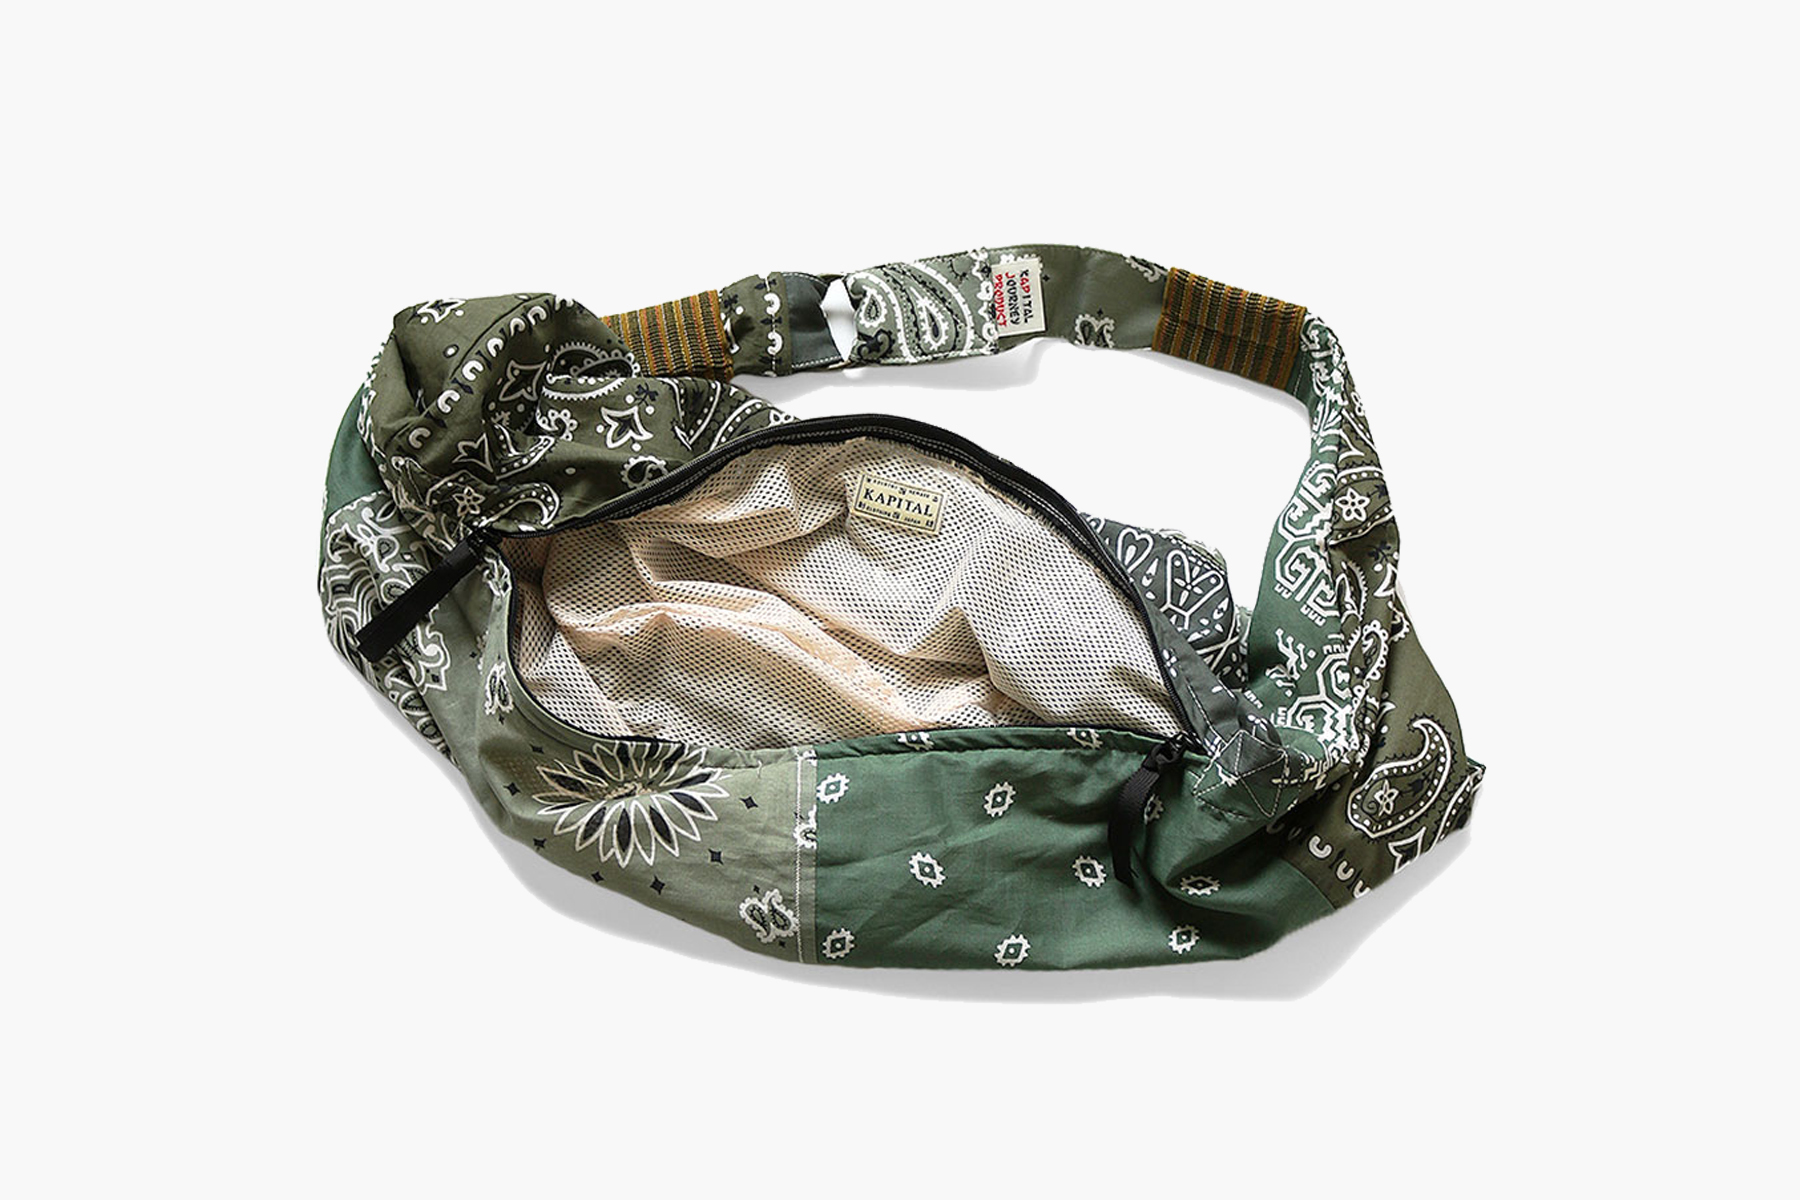 KAPITAL Vintage Gauze Bandana Beach Bum Bag